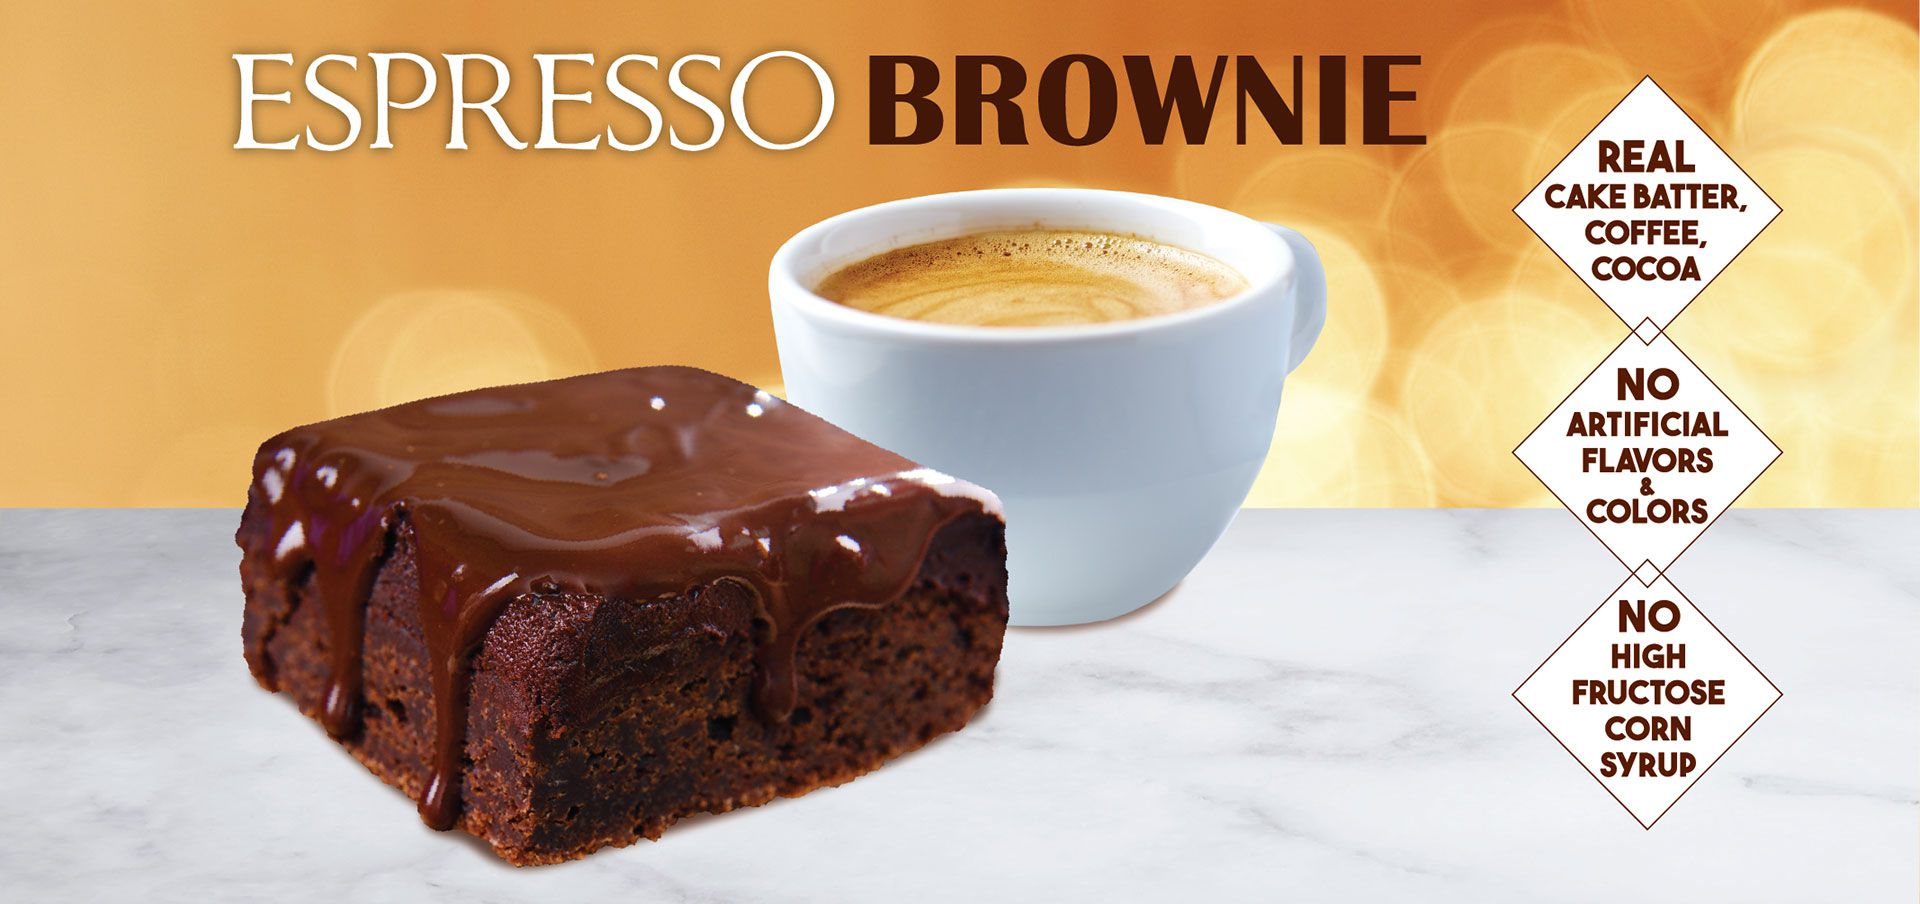 espresso brownie label image